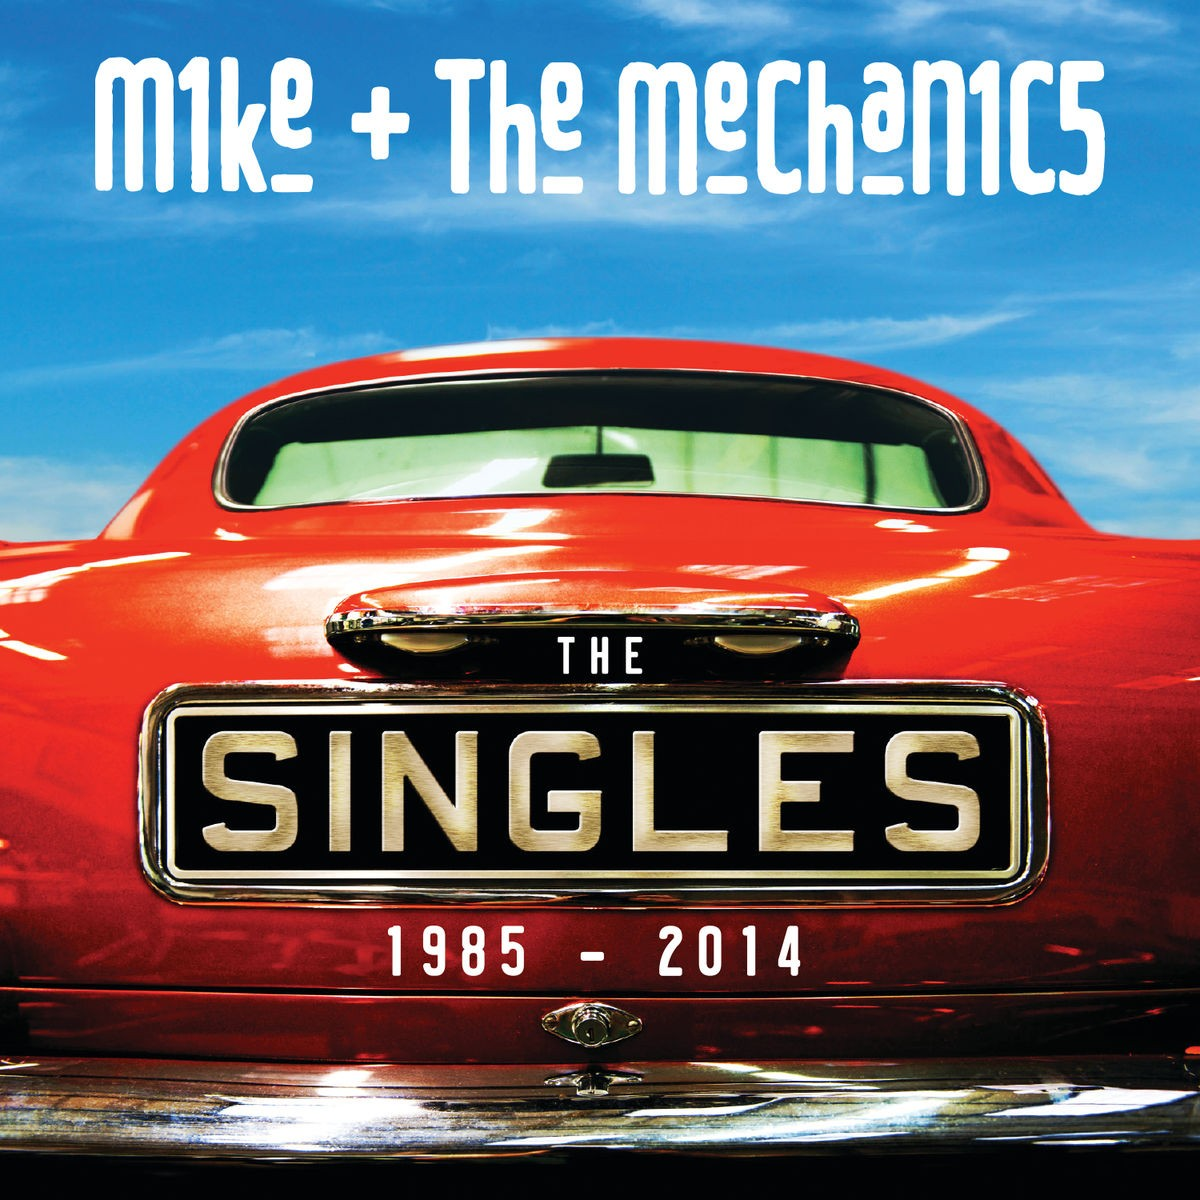 Mike And The Mechanics - The Singles 1985-2014 CD - 06025 3753171